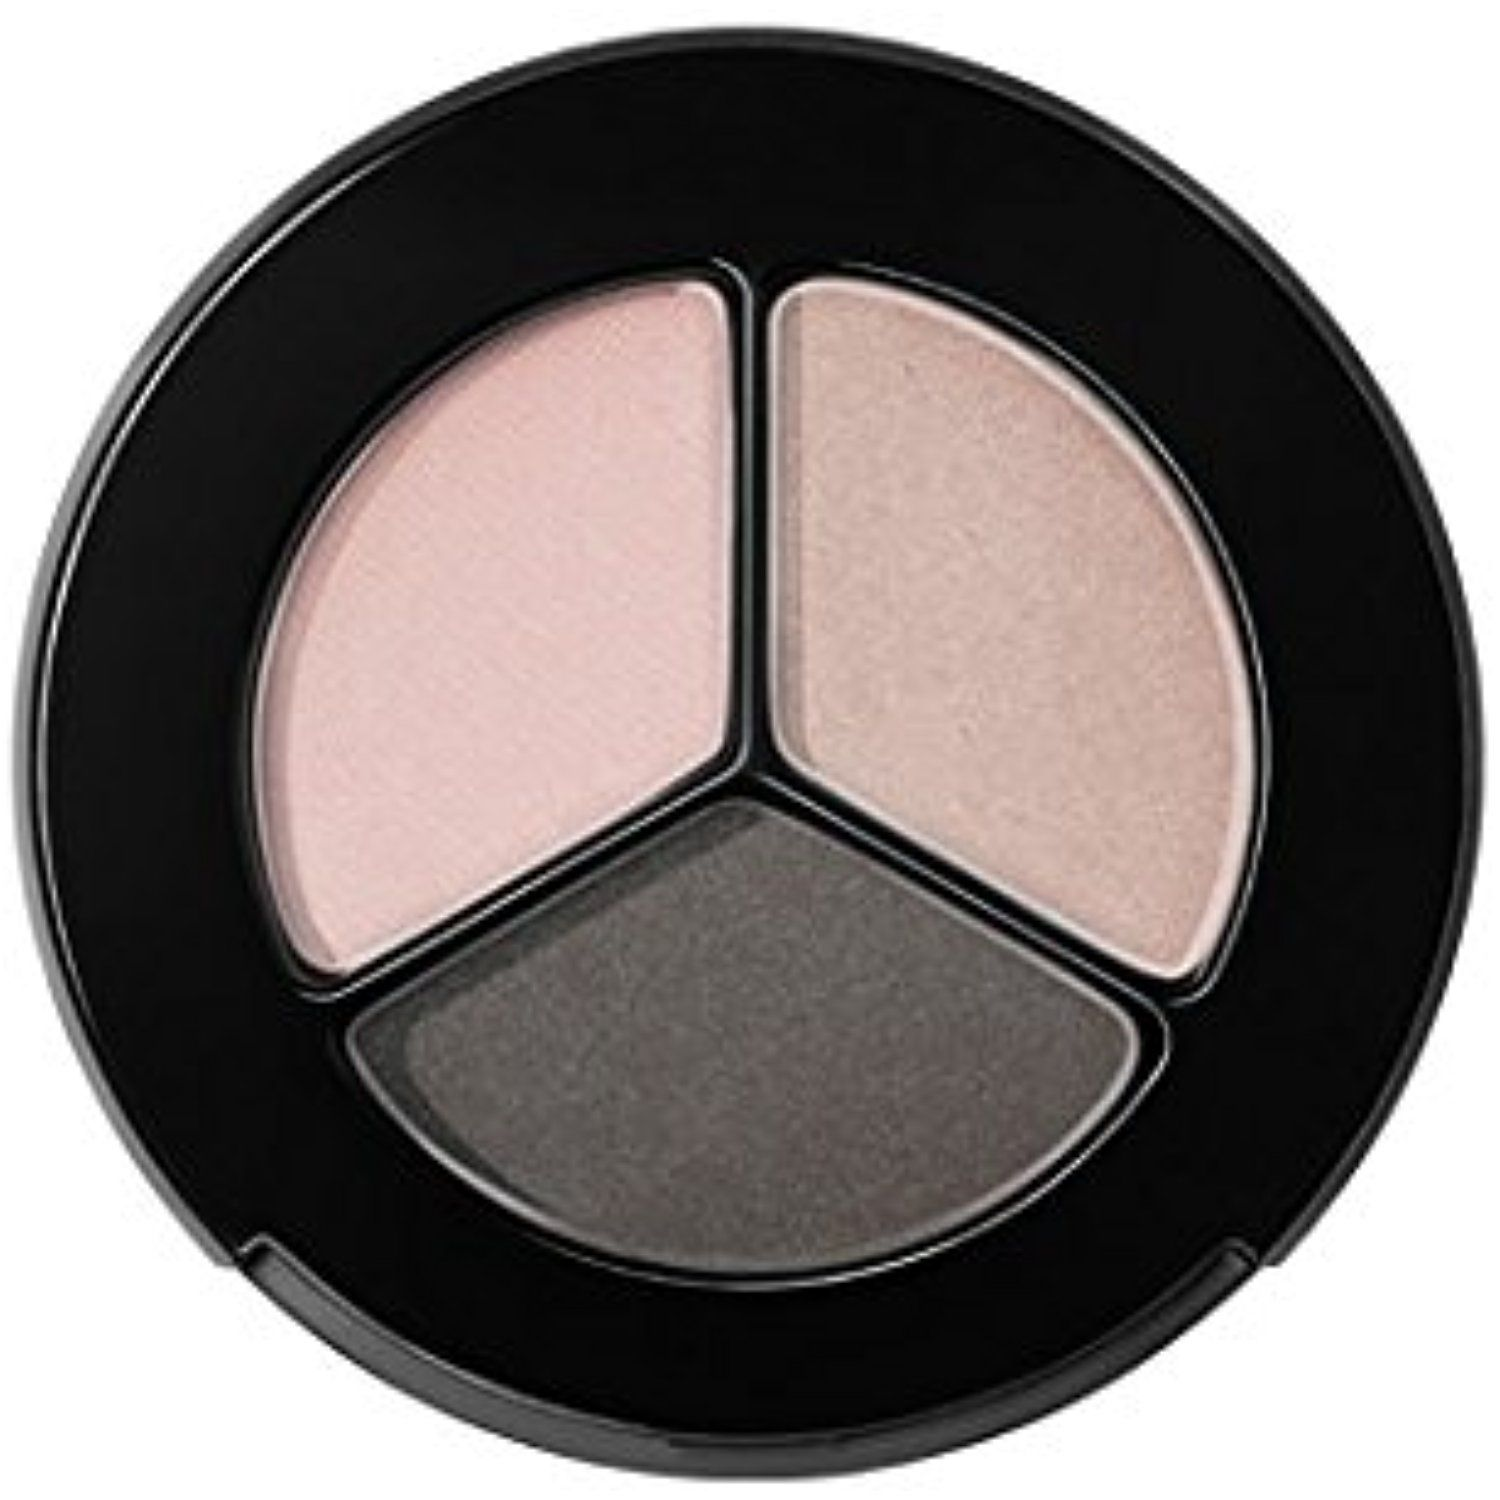 Smashbox Photo Op Eye Shadow Trio Shutterspeed Check Out The